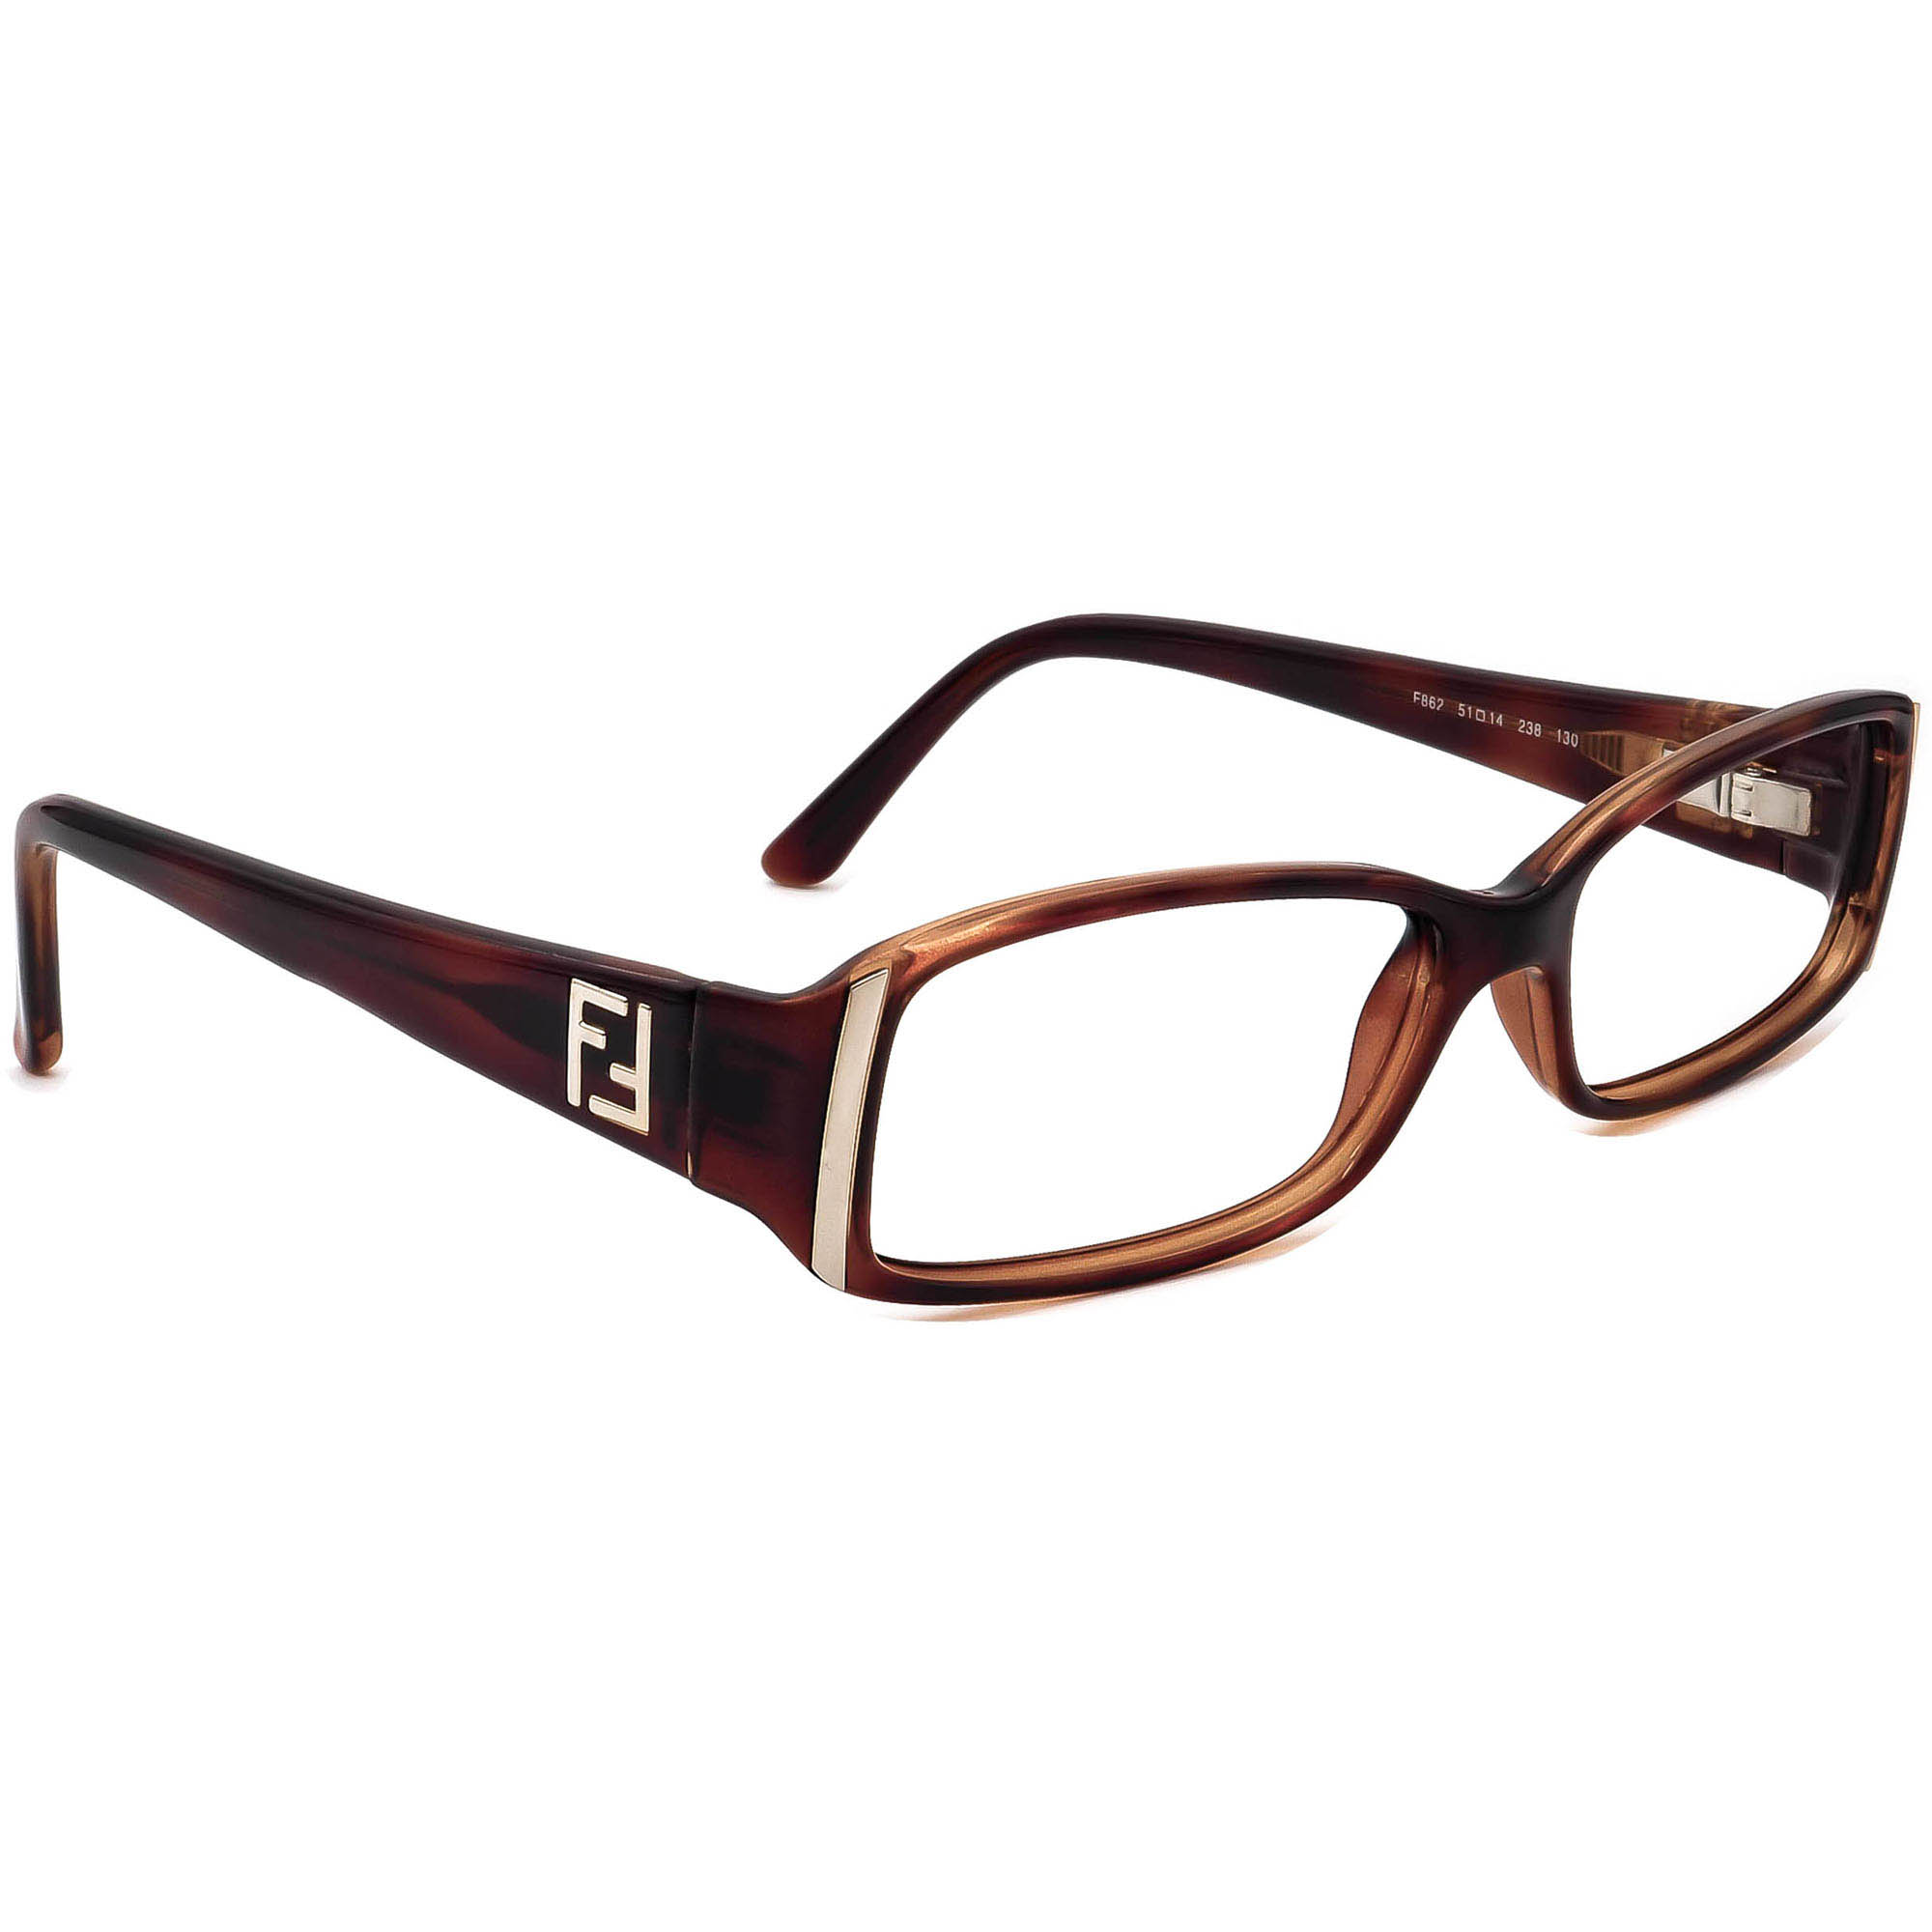 Fendi F862 238 Eyeglasses